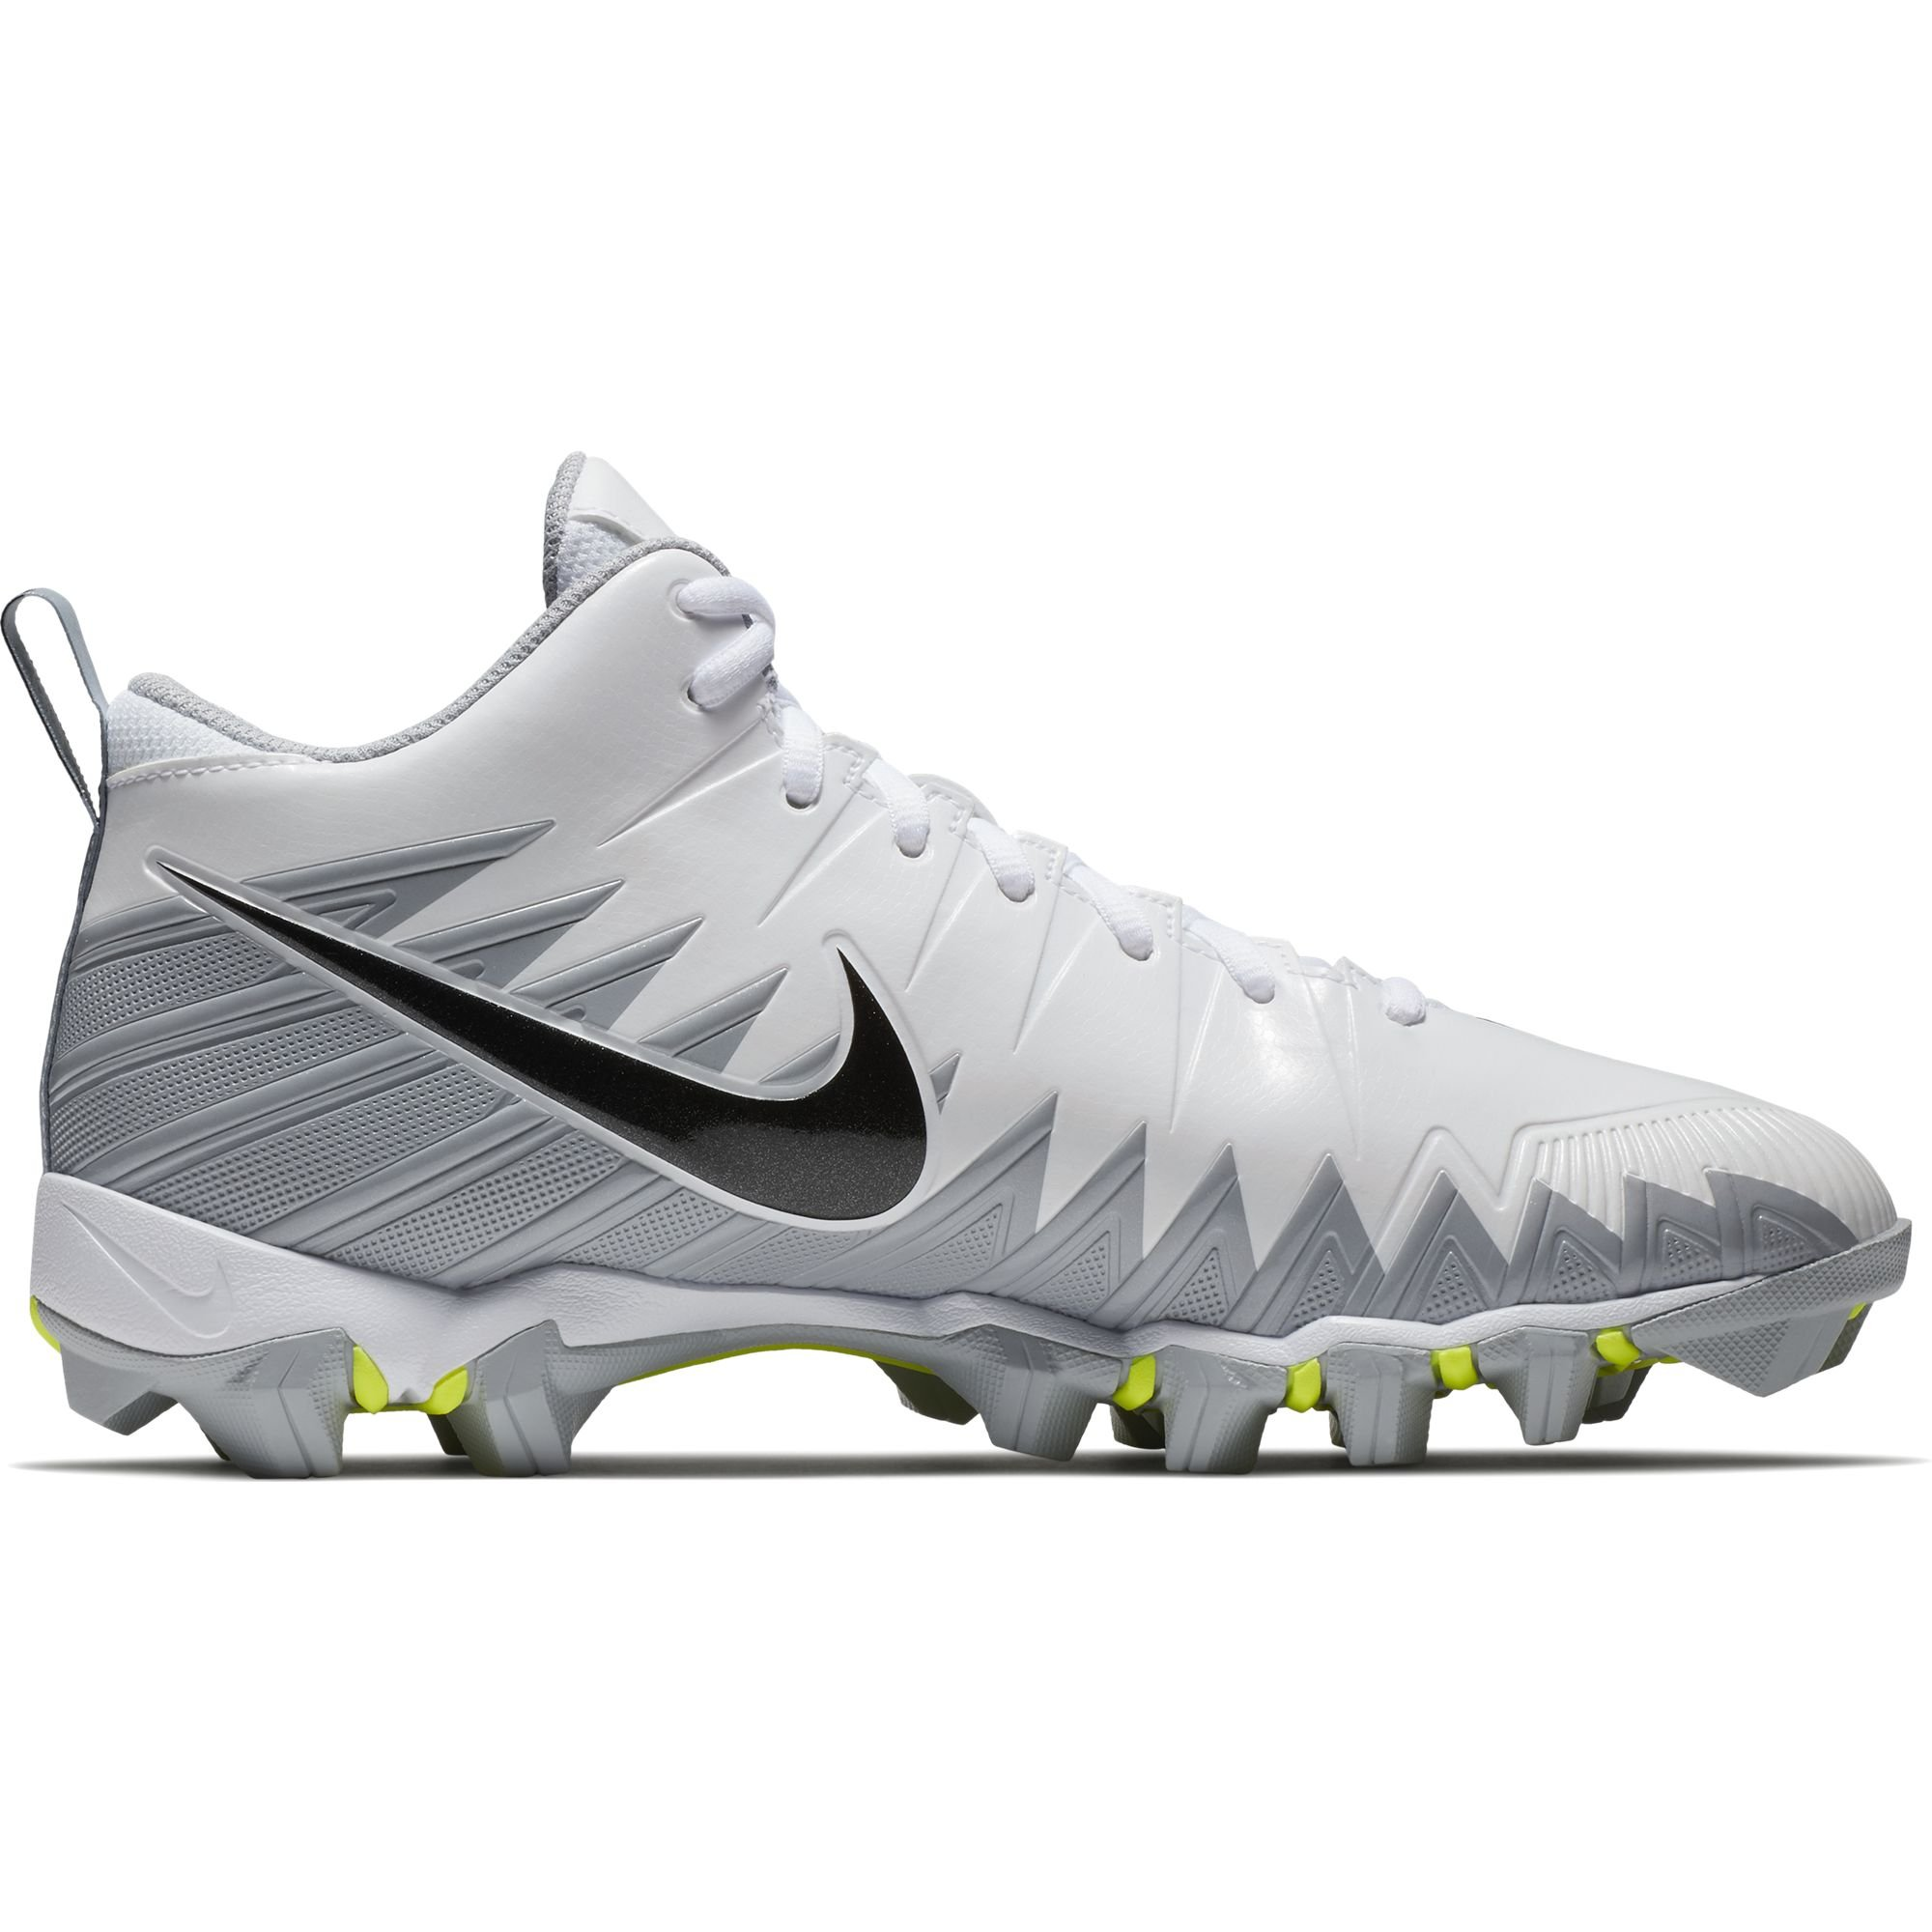 NIKE Men's Alpha Menace Shark Football Cleat White/Black/Metallic Silver/Wolf Grey Size 7 M US by NIKE